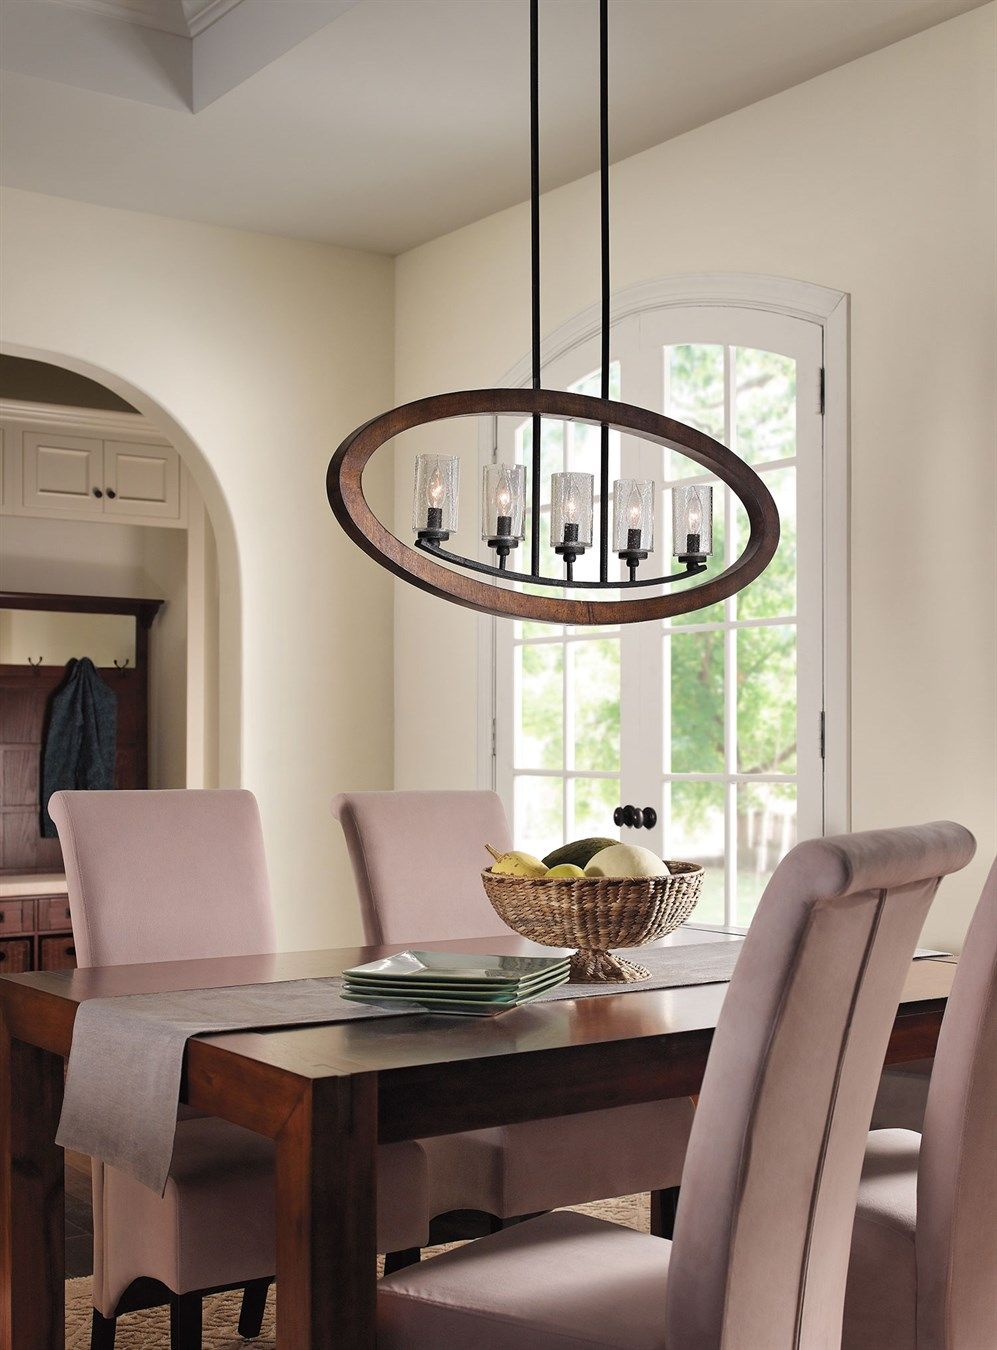 Kichler Dining Room Lighting Captivating Dining Room Lightinggrand Bank 5 Light Linear Chandelier Inspiration Design